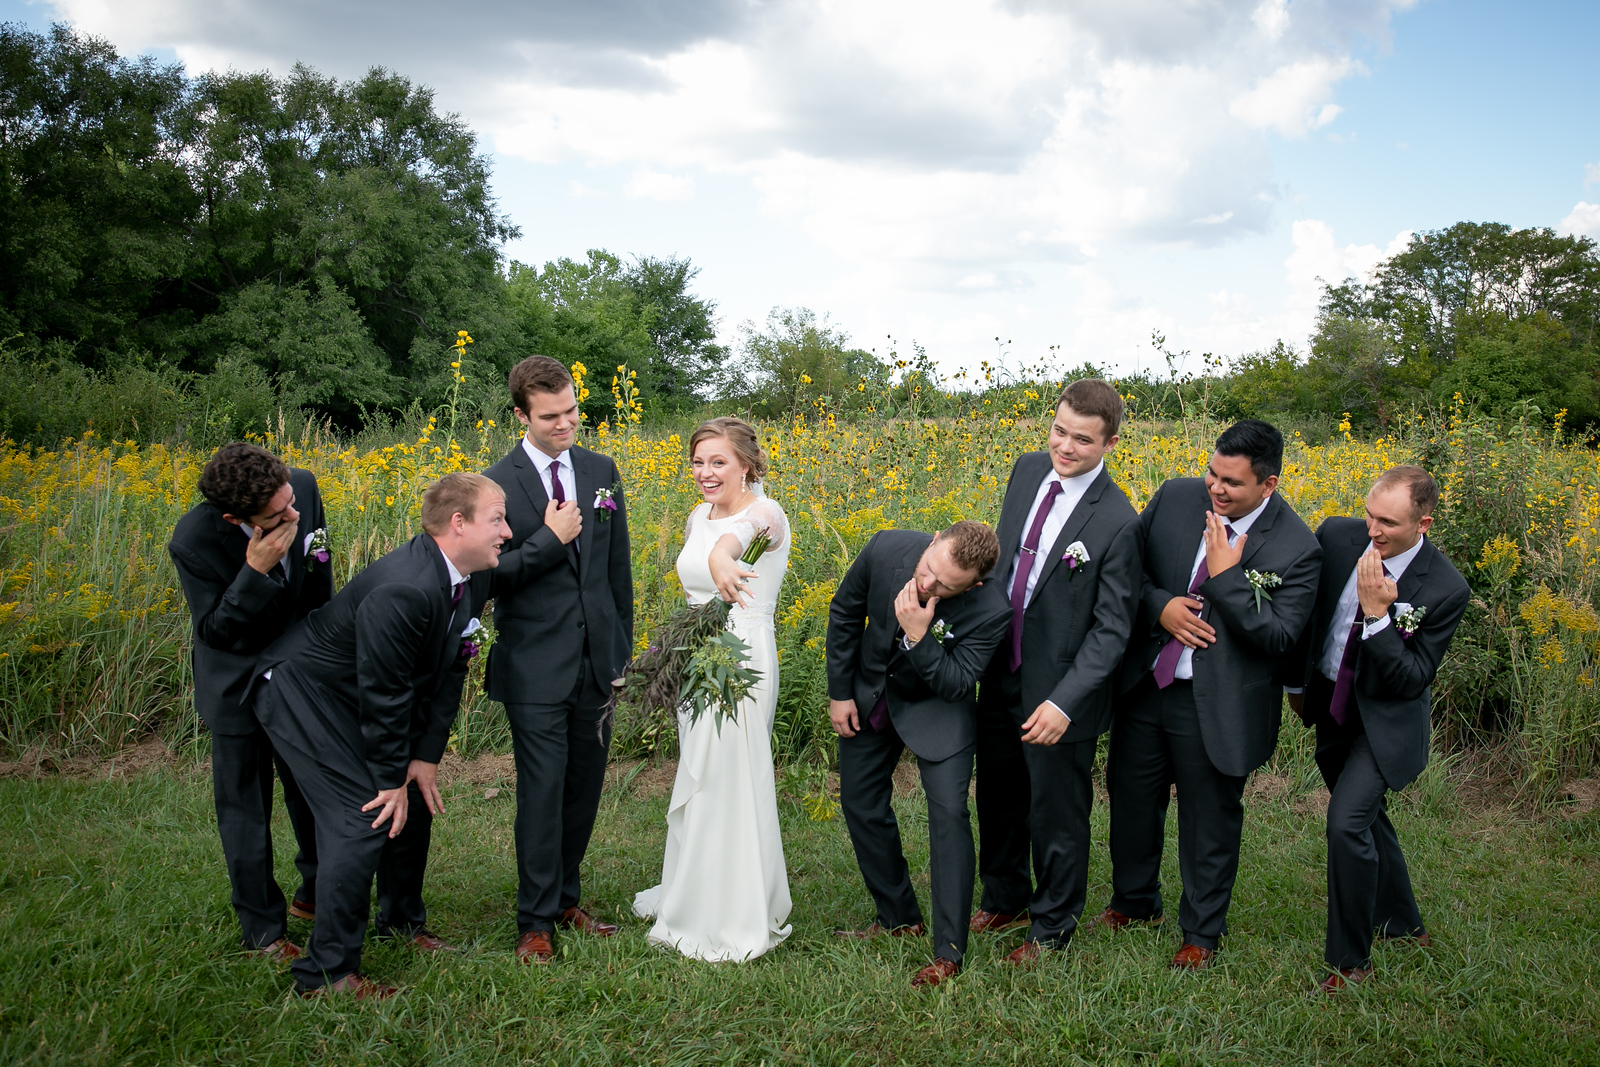 seven groomsmen jokingly looking at the bride's engagement ring in awe